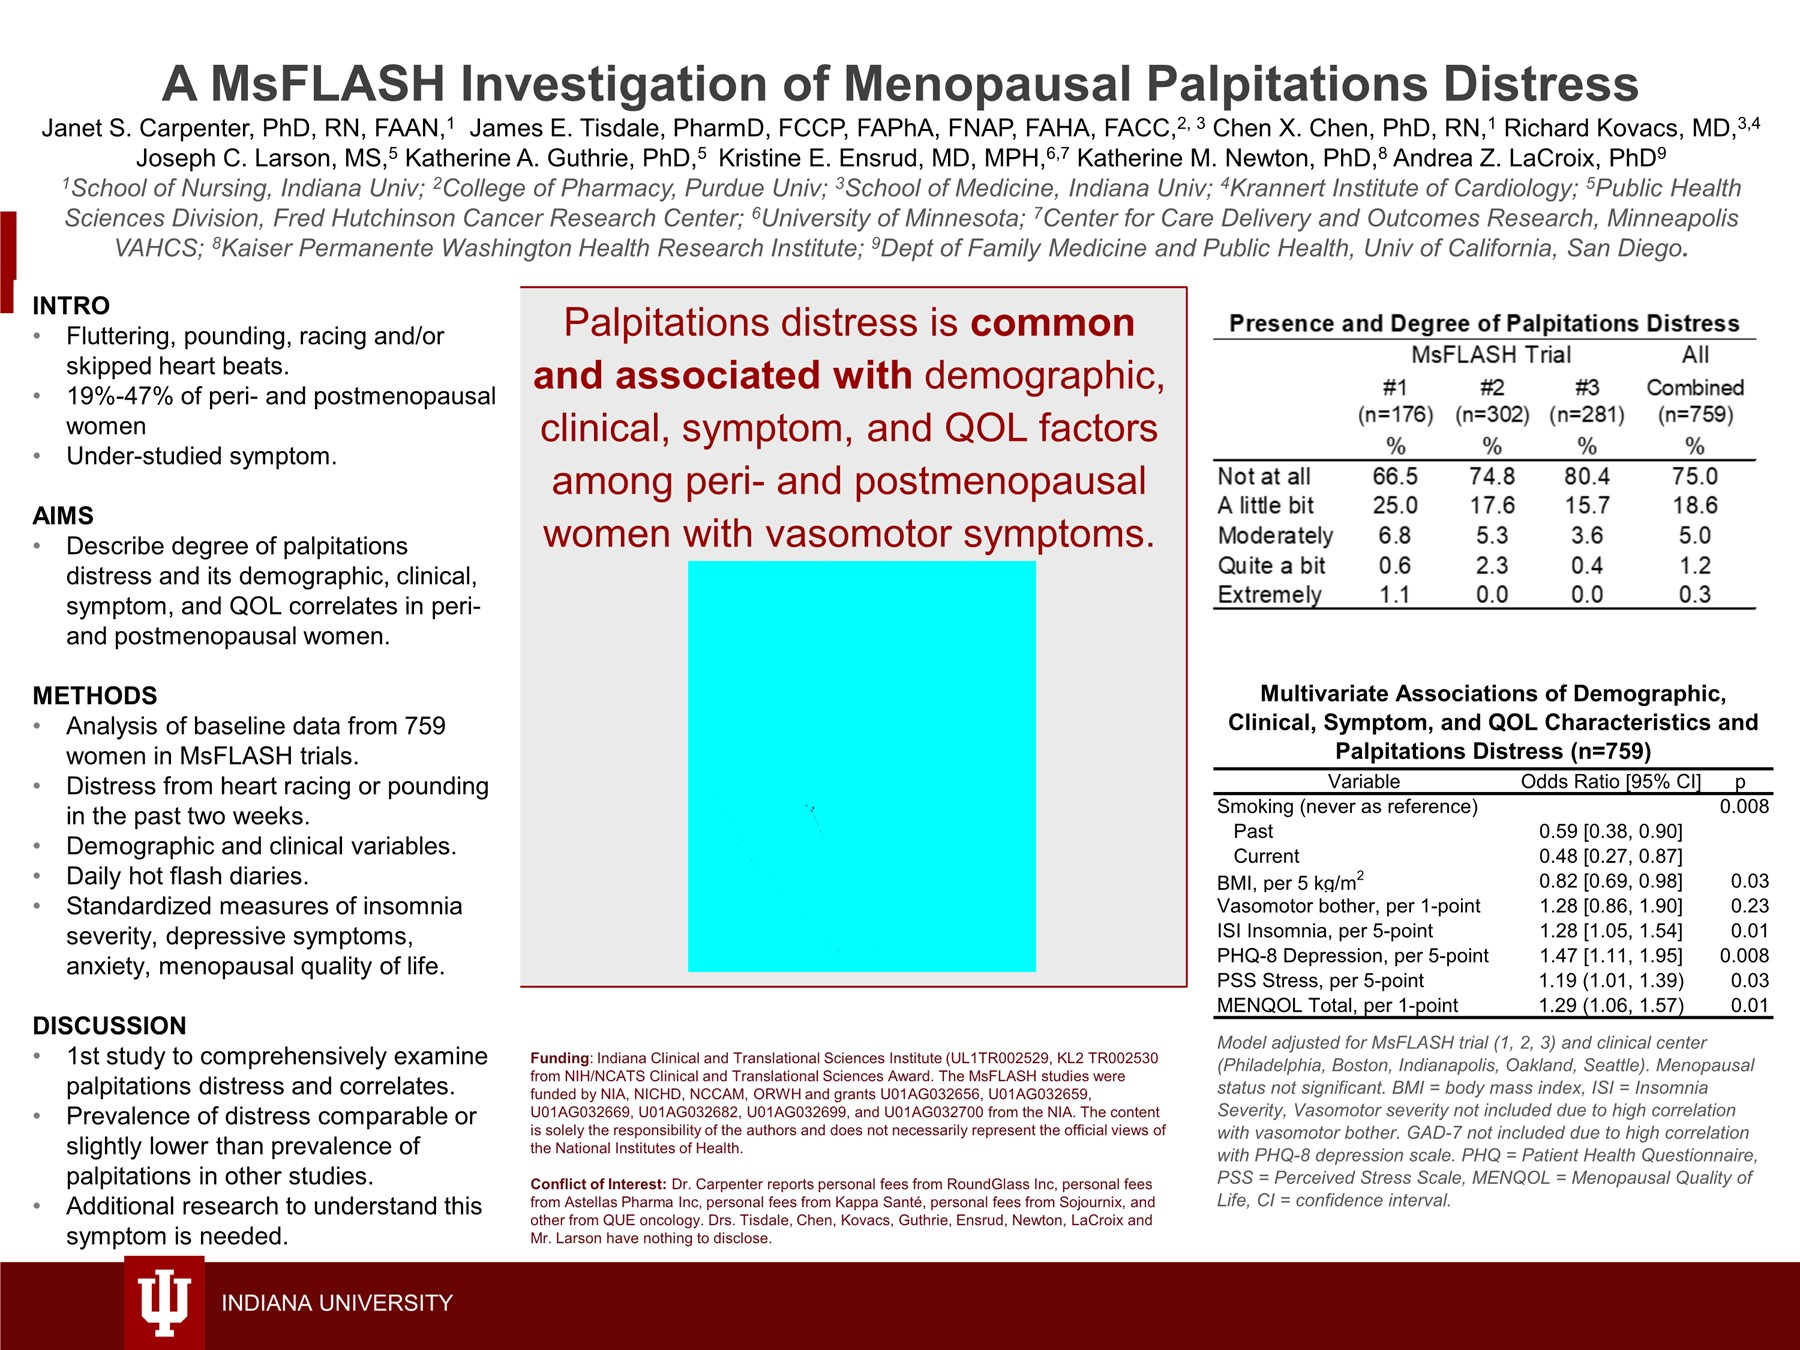 A MsFLASH Investigation of Self-reported Menopausal Palpitations Distress